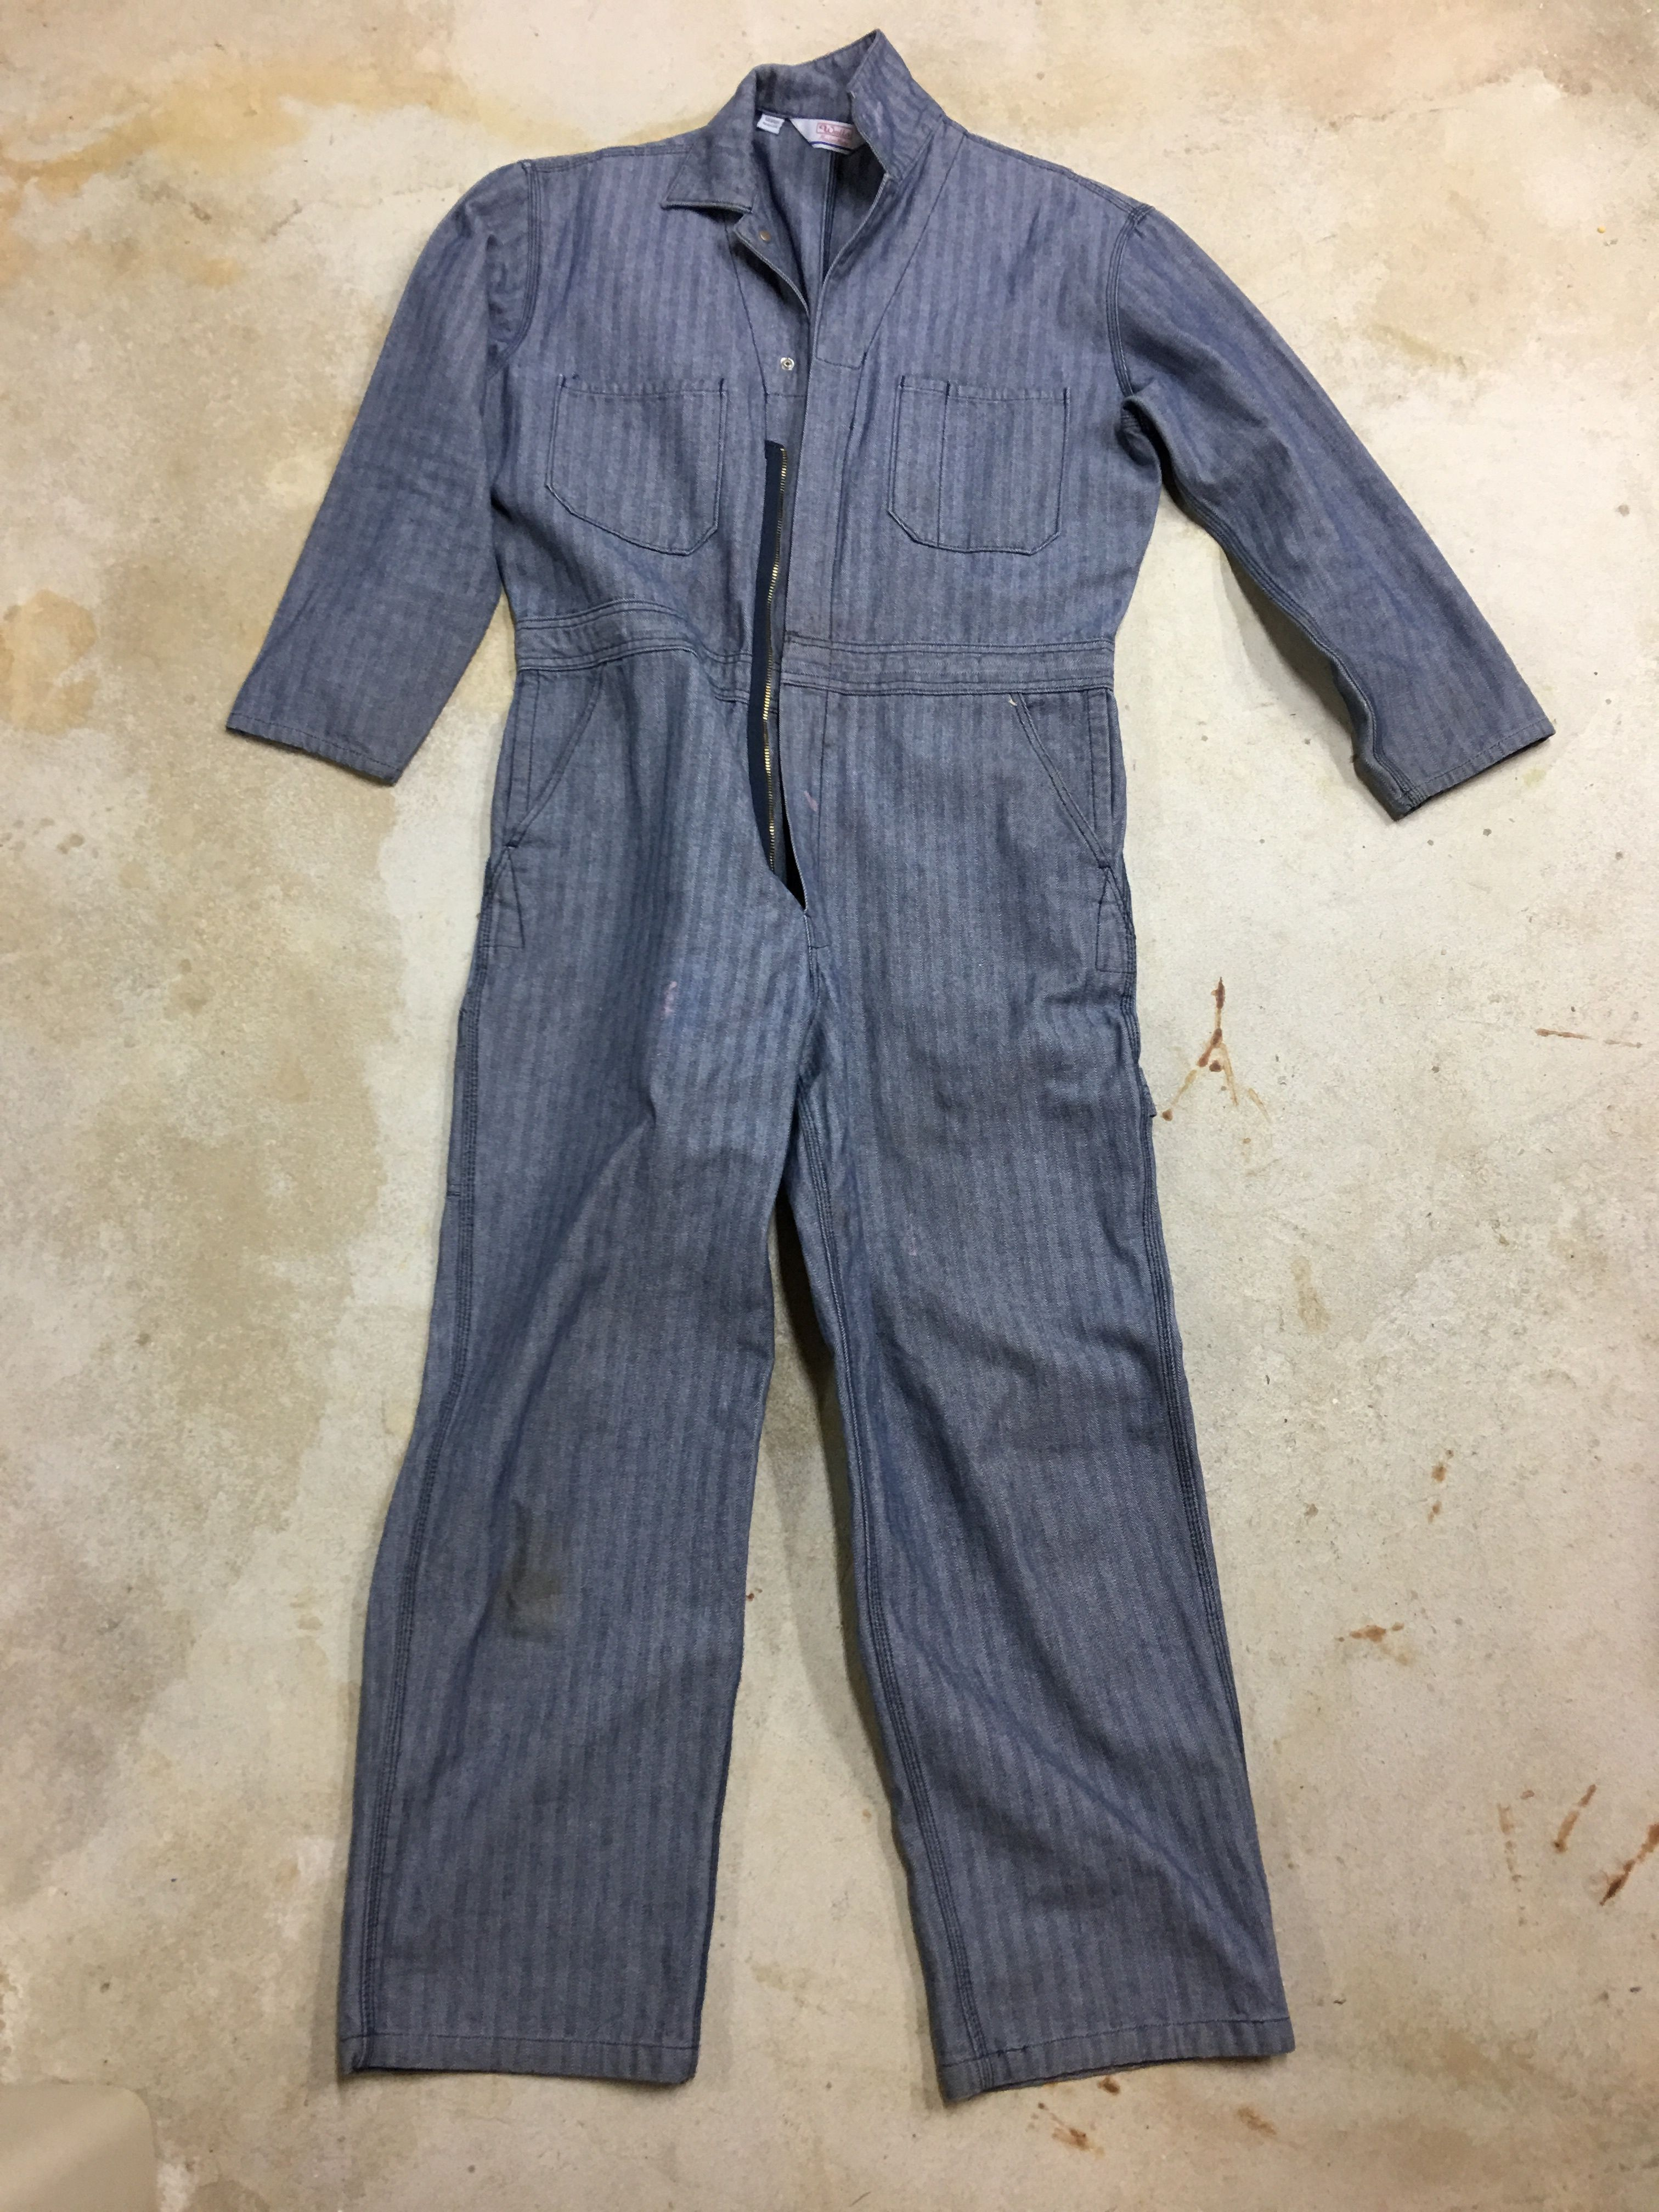 39225f98d23b The Best Coveralls and How to Buy Them